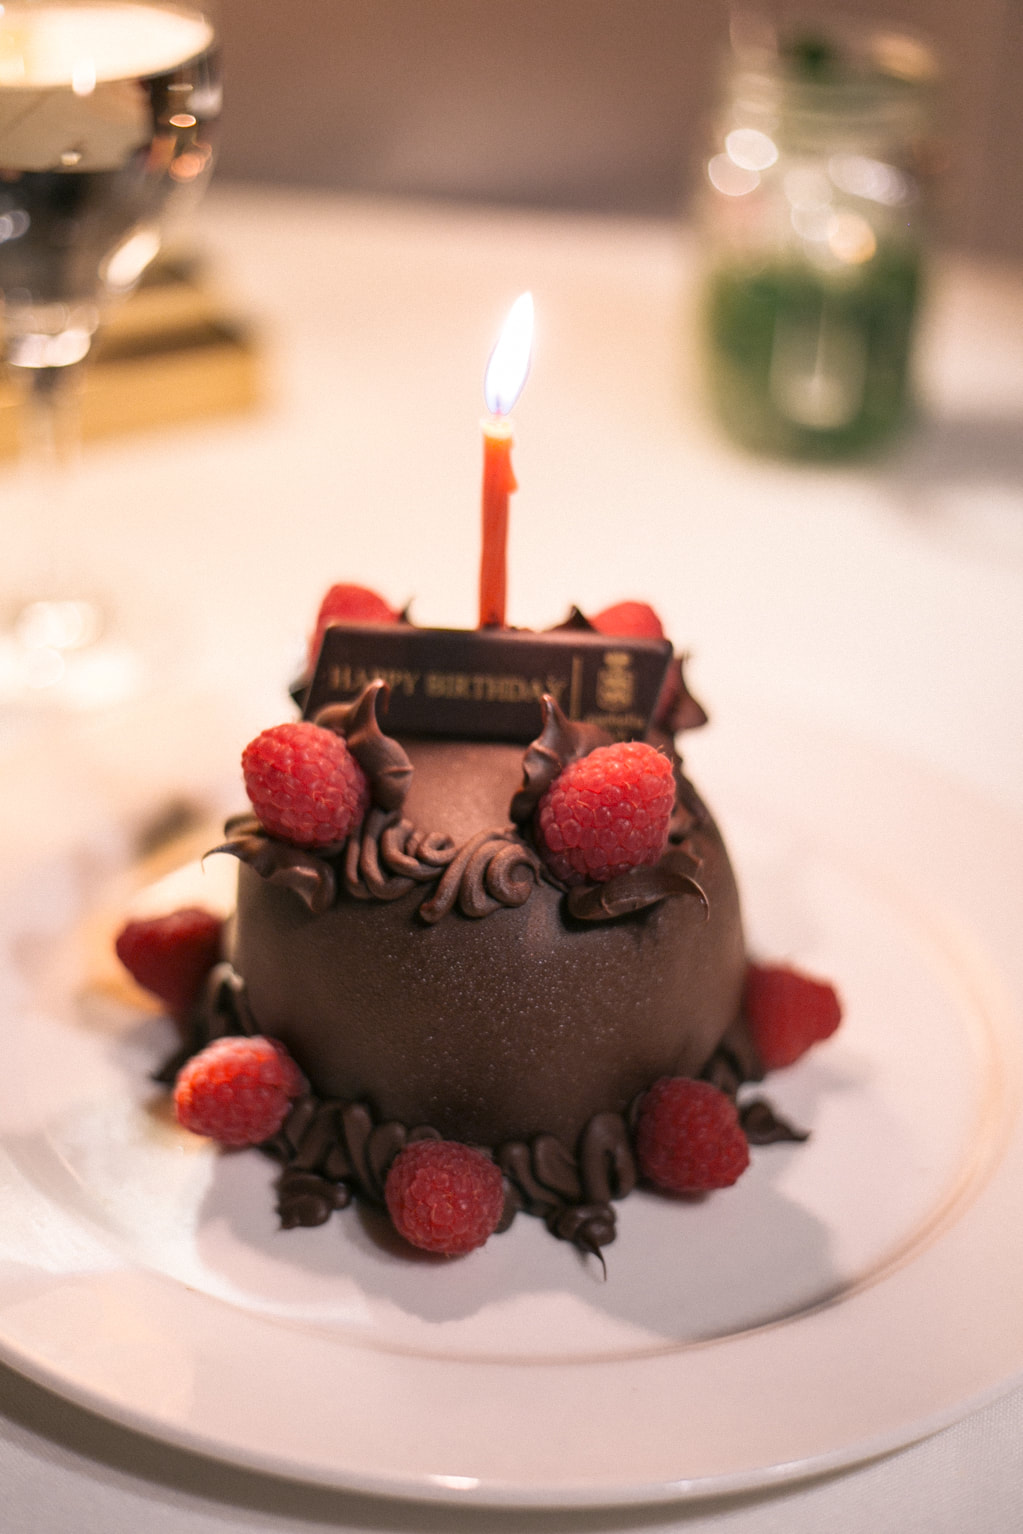 Birthday celebrations at The Marbella Club hotel by The Belle Blog